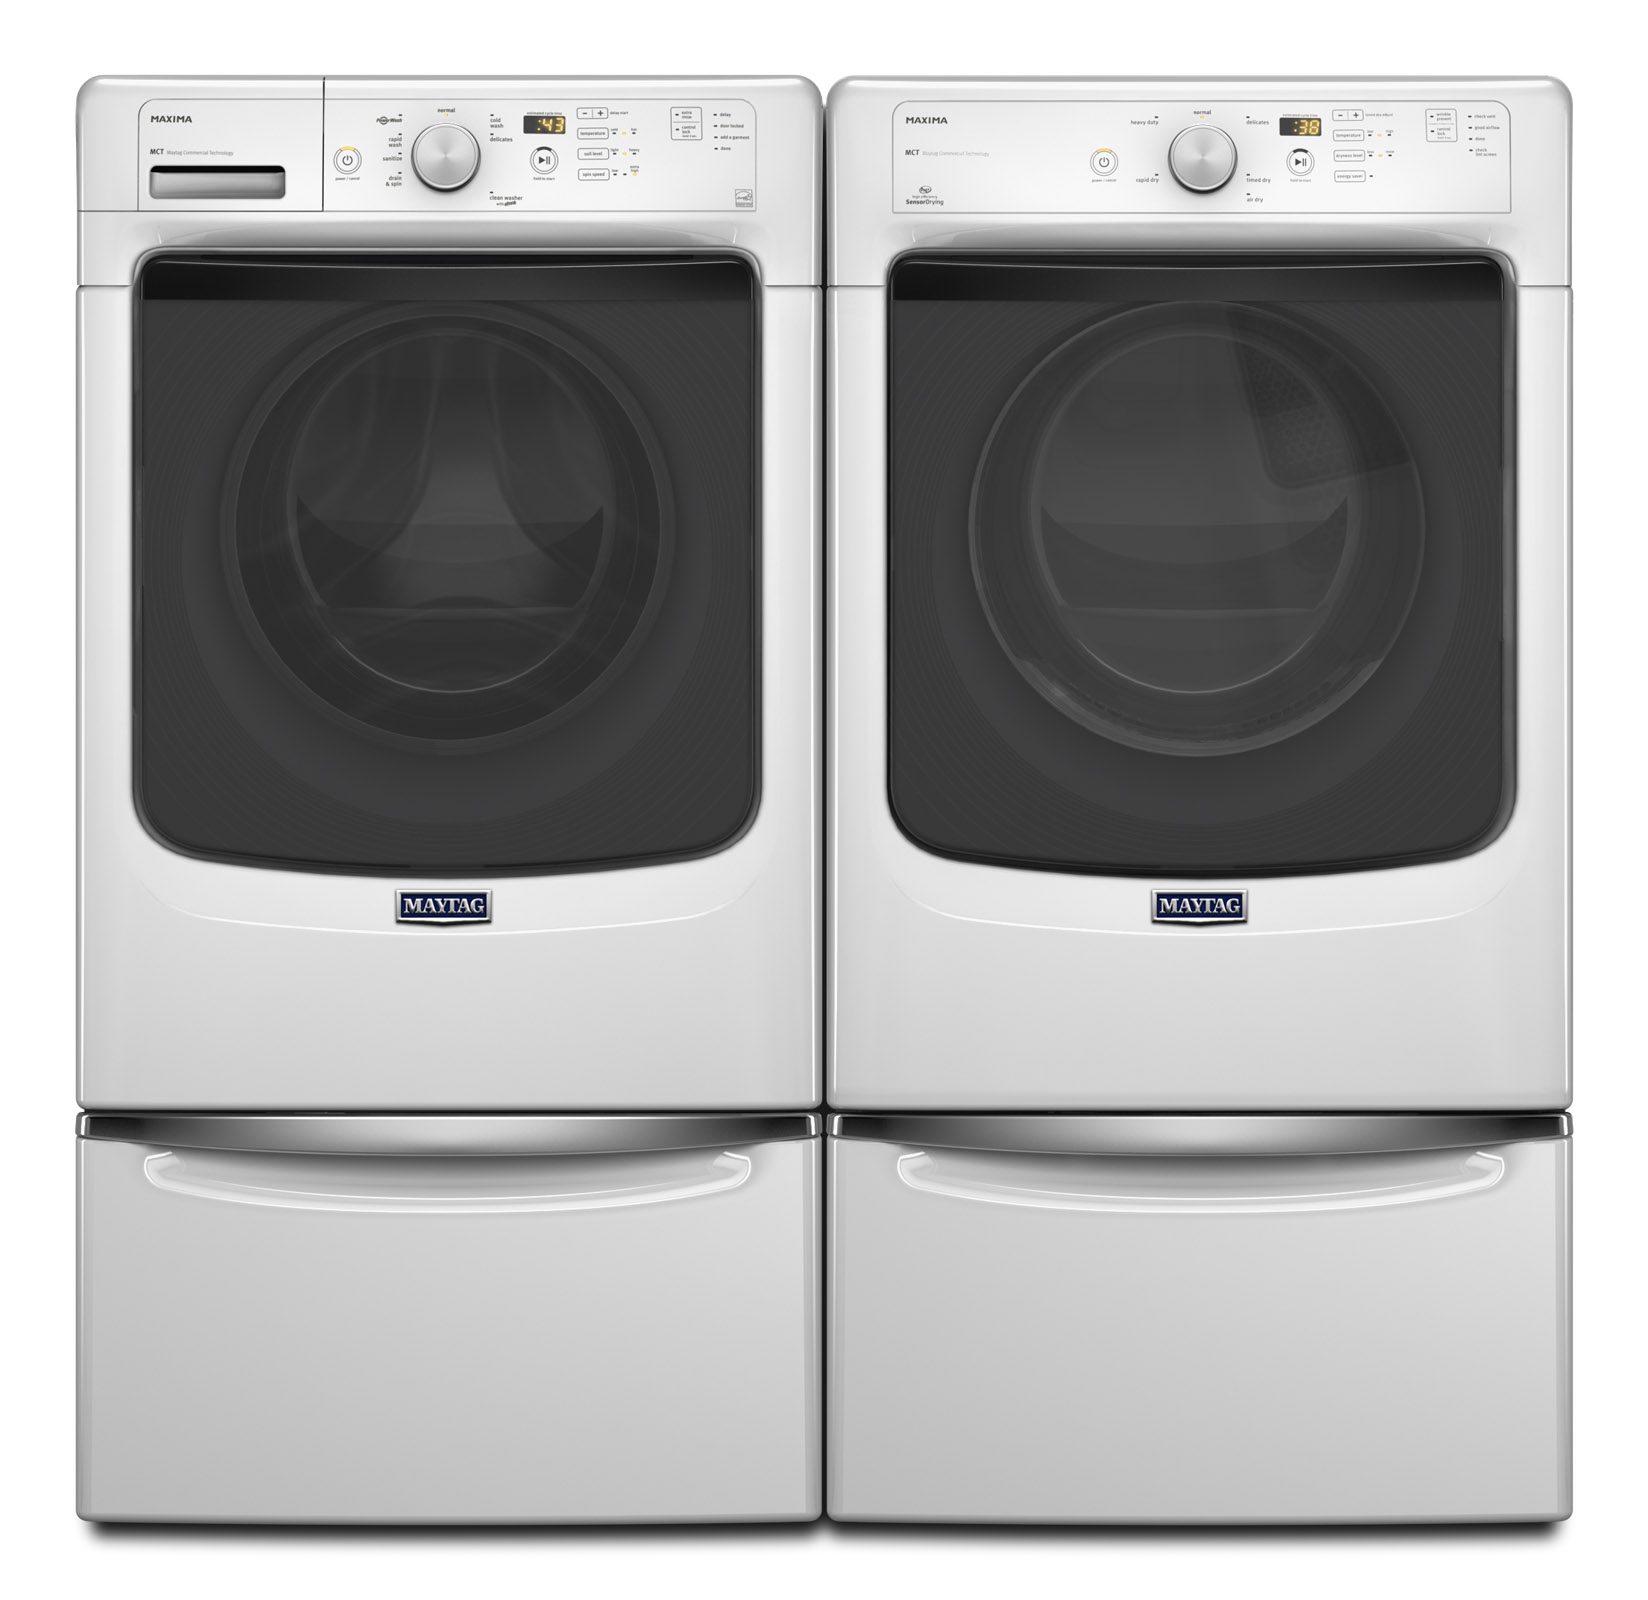 Maytag MHW3100DW 4.2 cu. ft. Maxima® Front-Load Washer w/ PowerWash® Cycle - White